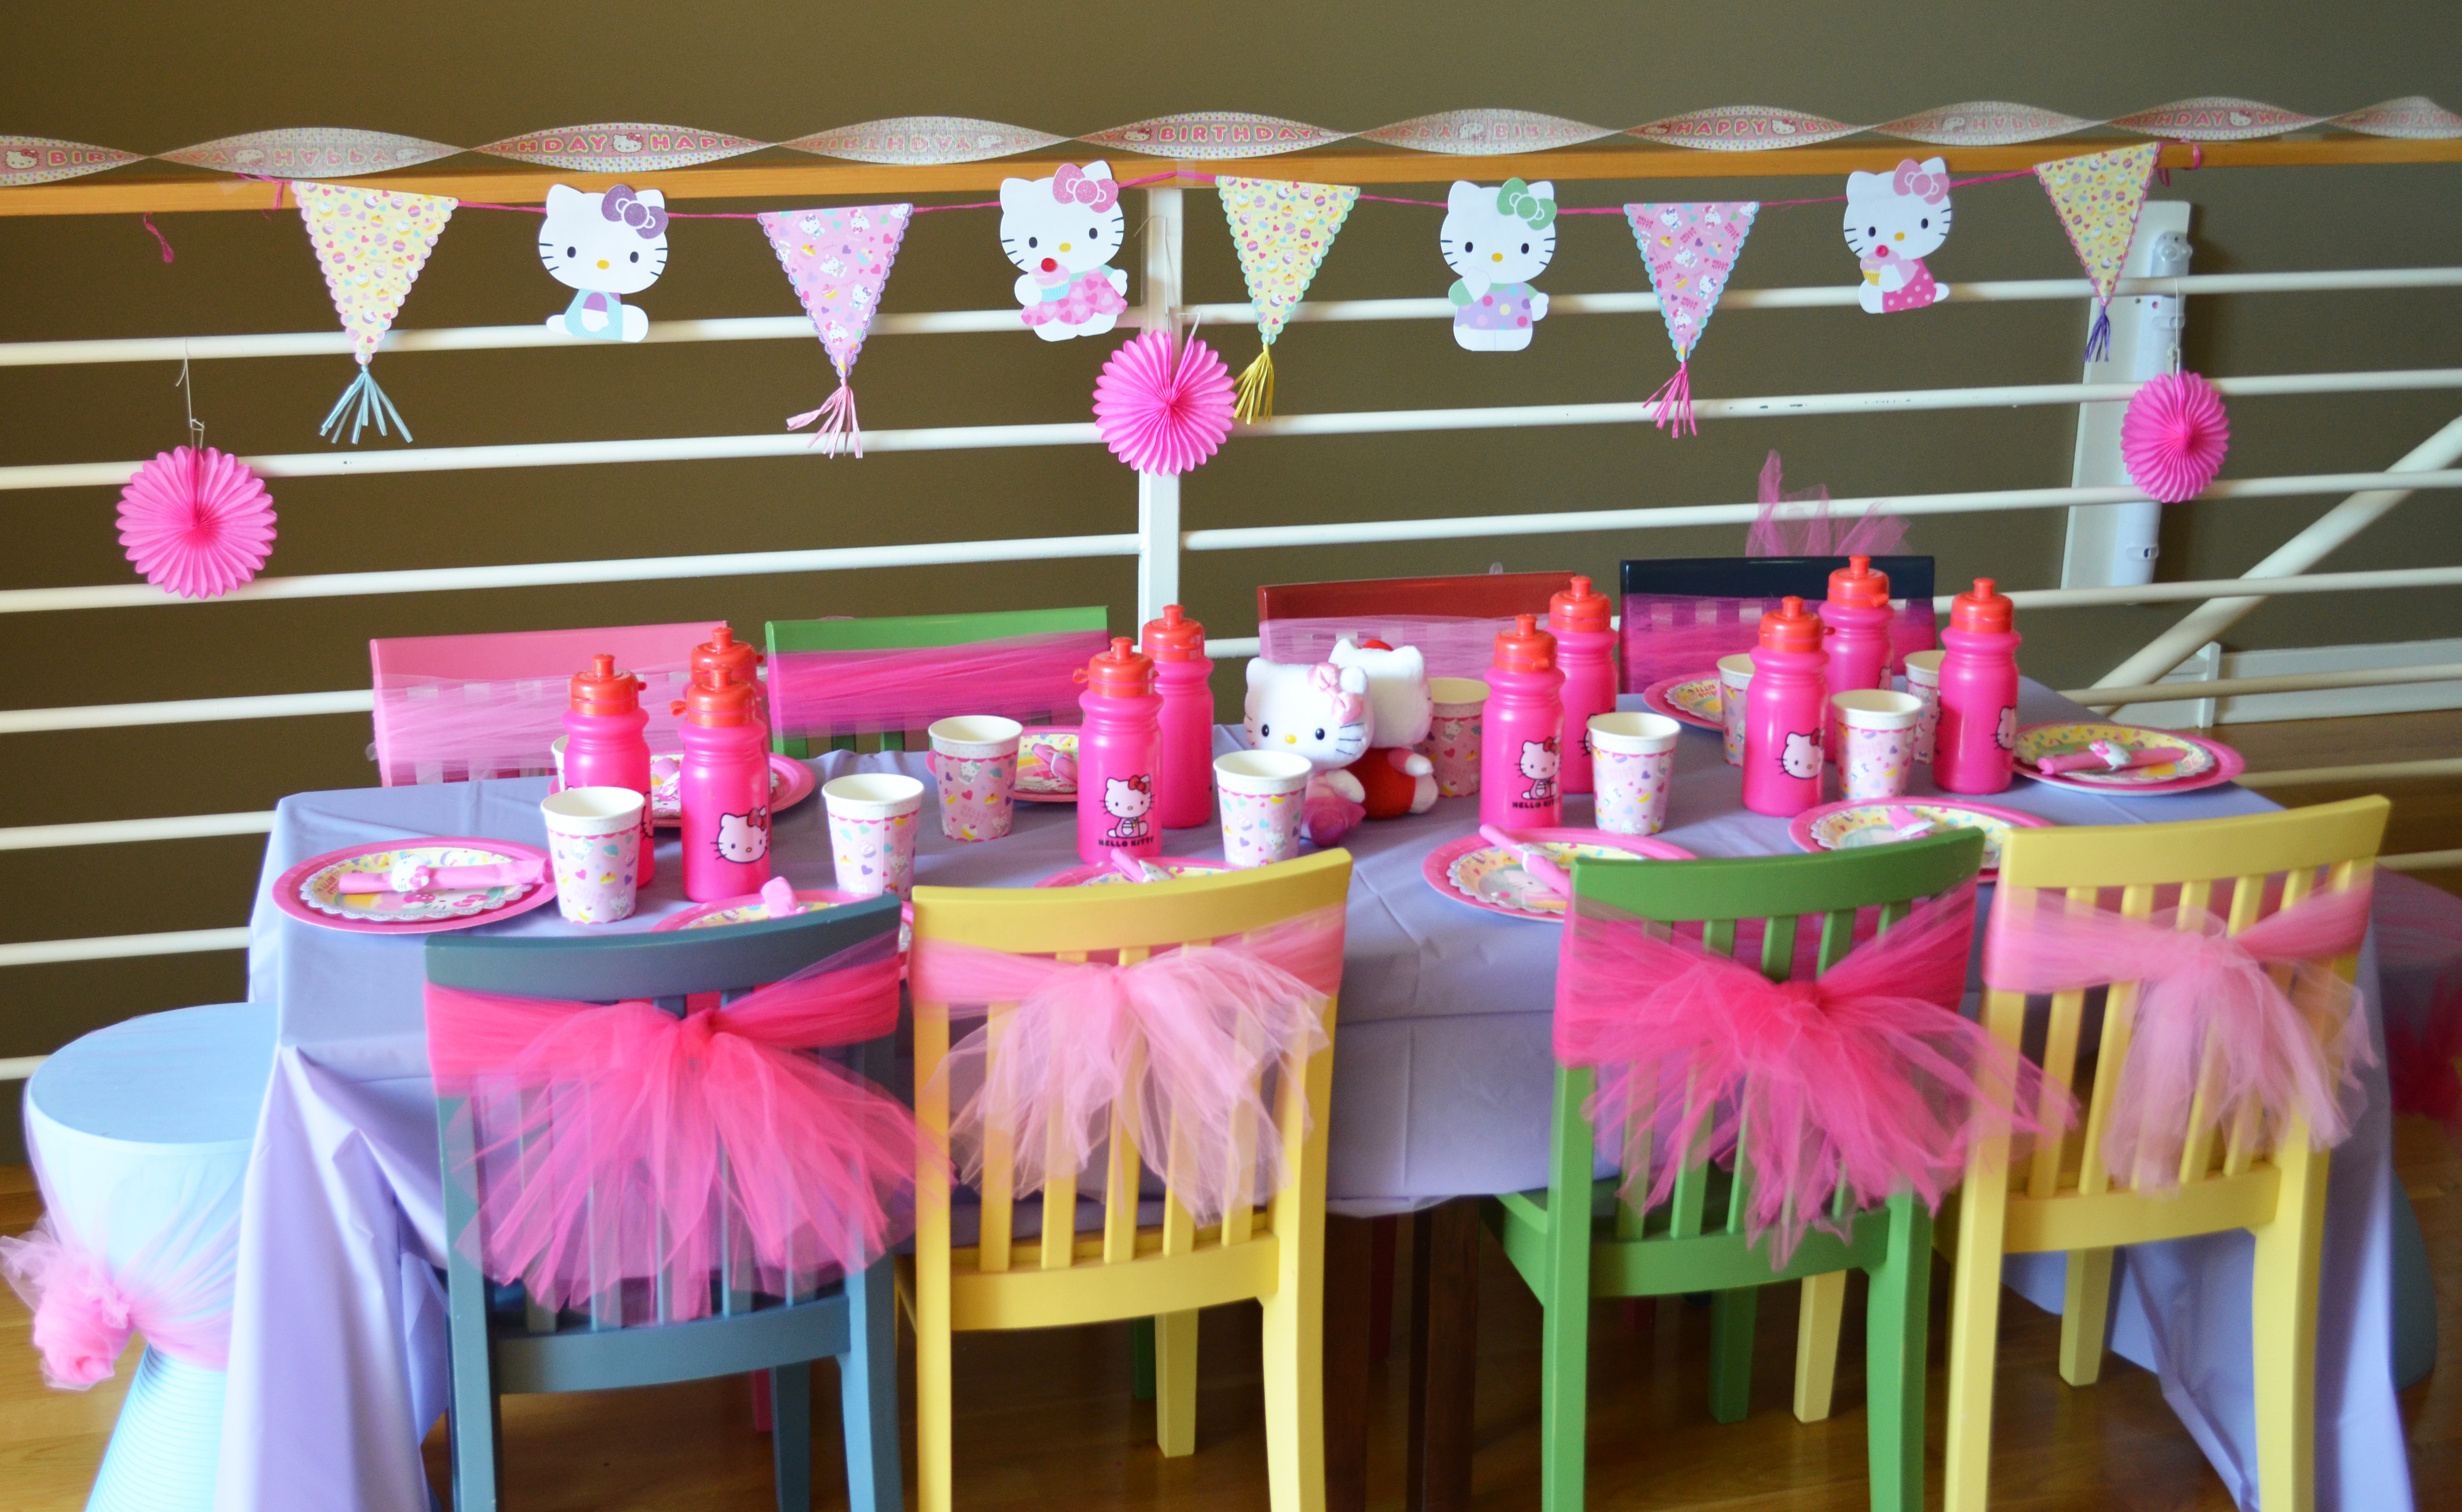 3 year old birthday party themes girl ; 01-Table